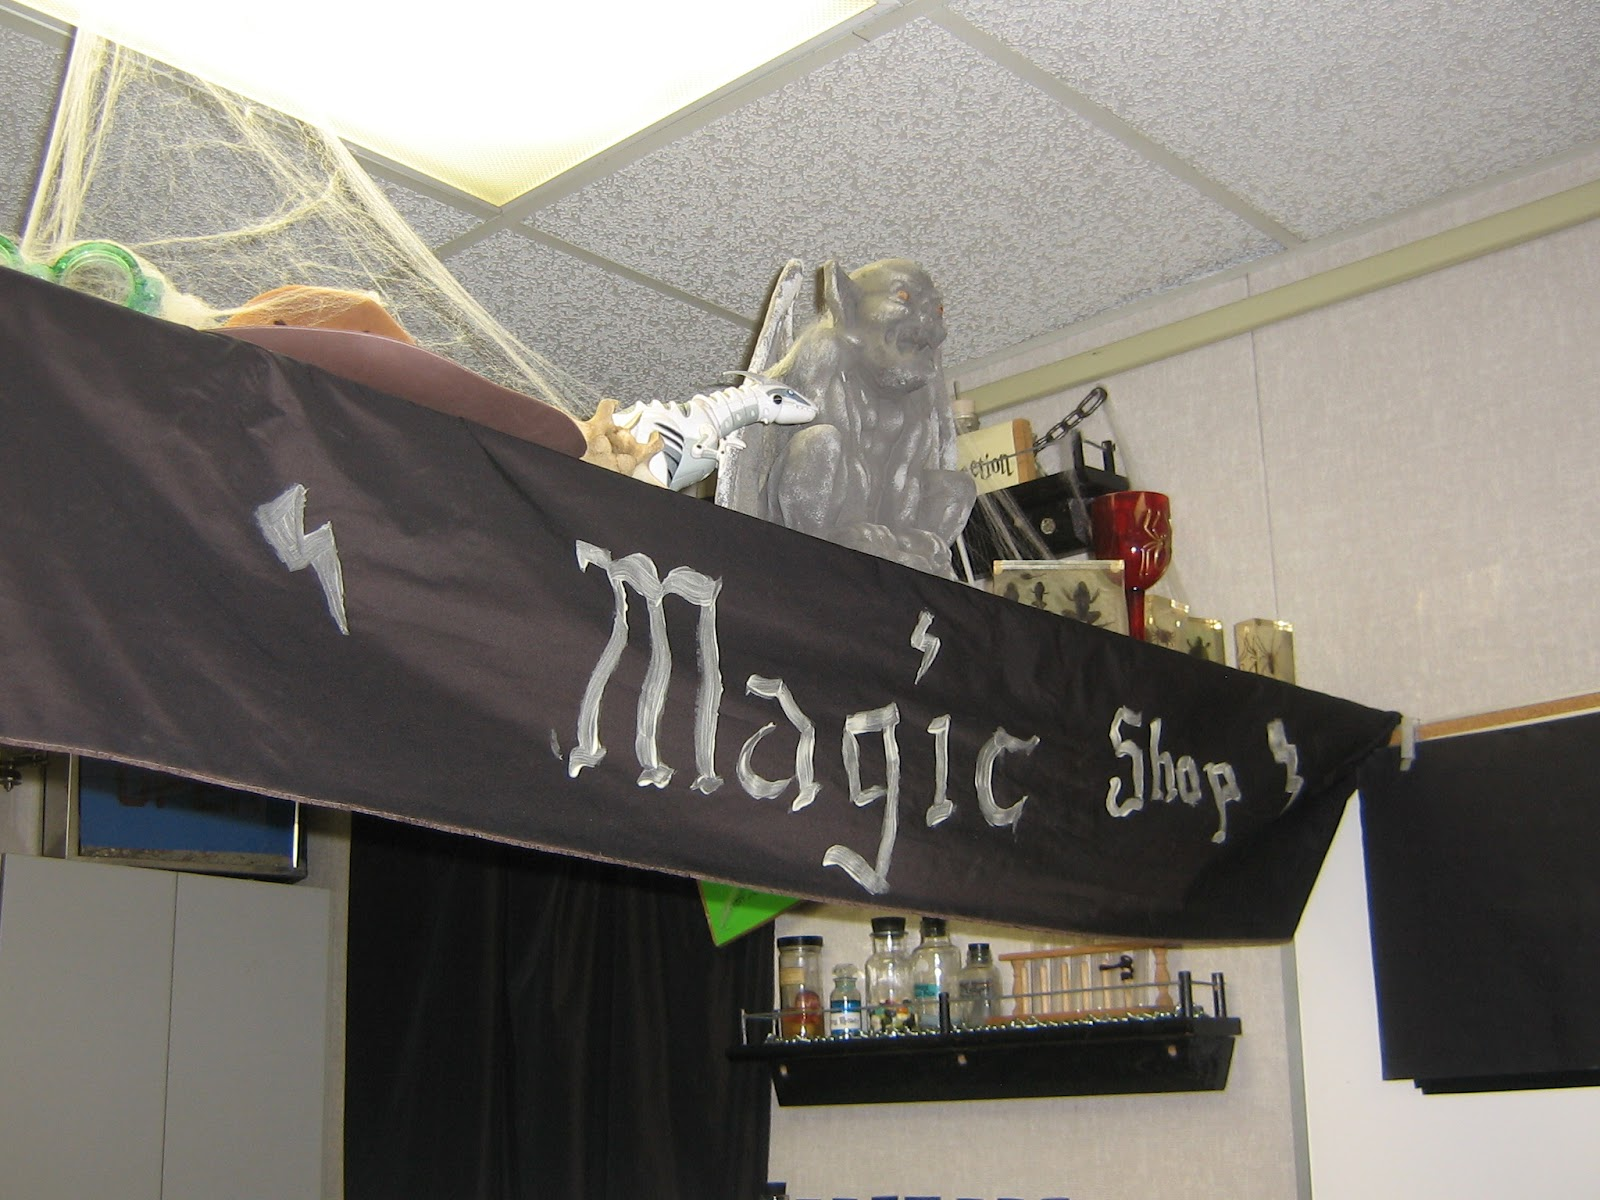 Harry Potter Classroom Decorations : Teehee two harry potter inspired classroom